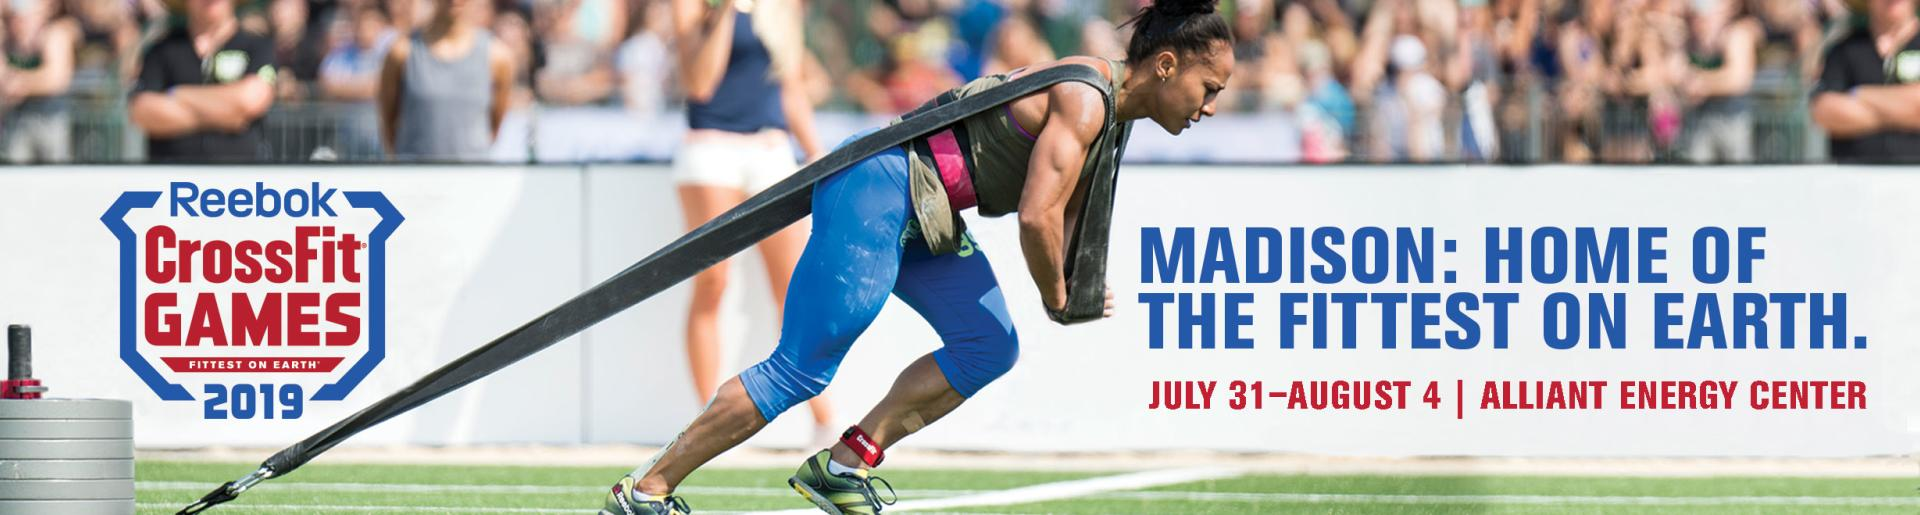 Things To Do 2018 Crossfit Games In Madison Wi